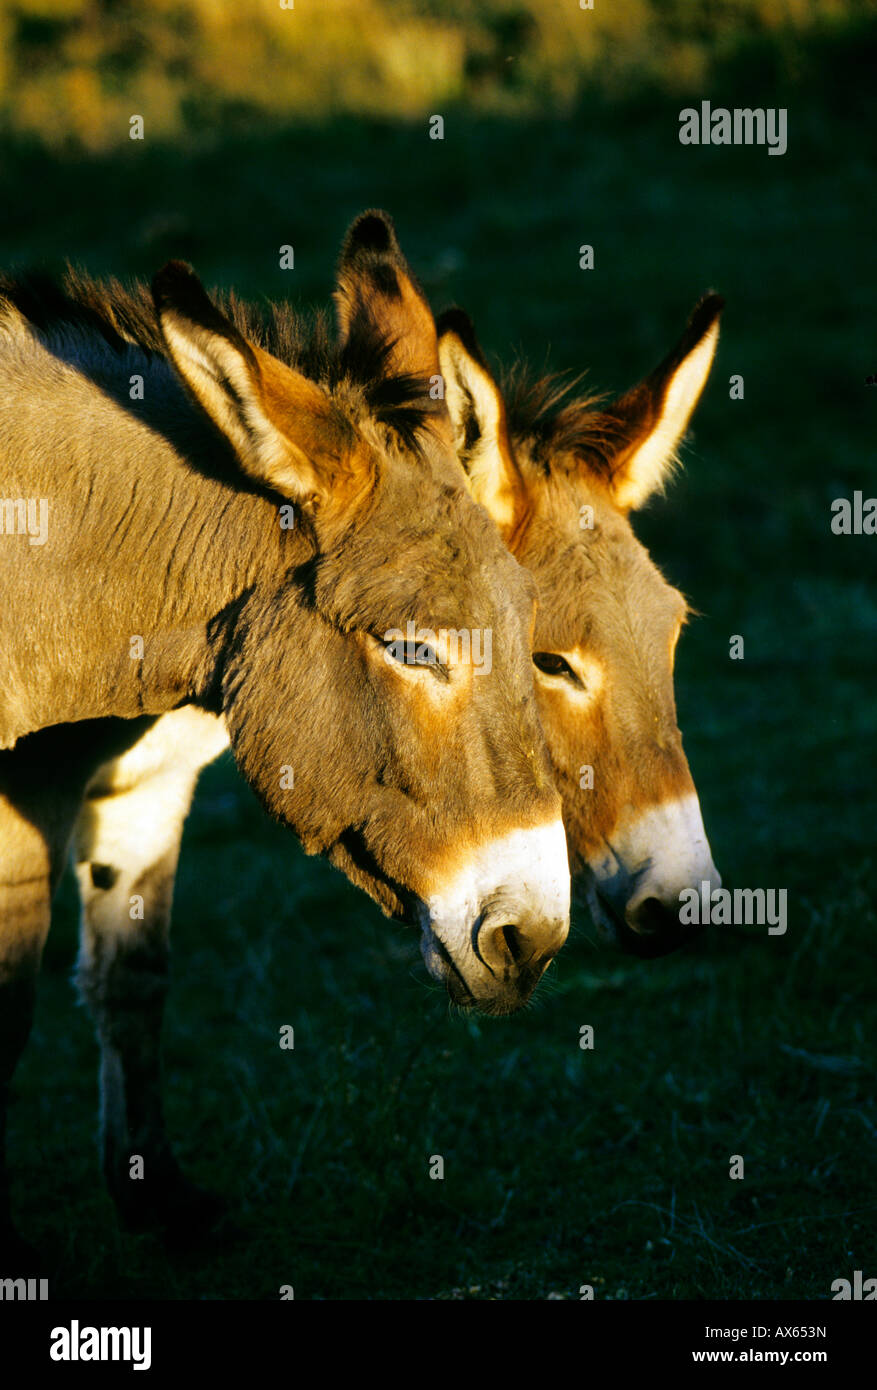 Donkeys - Stock Image